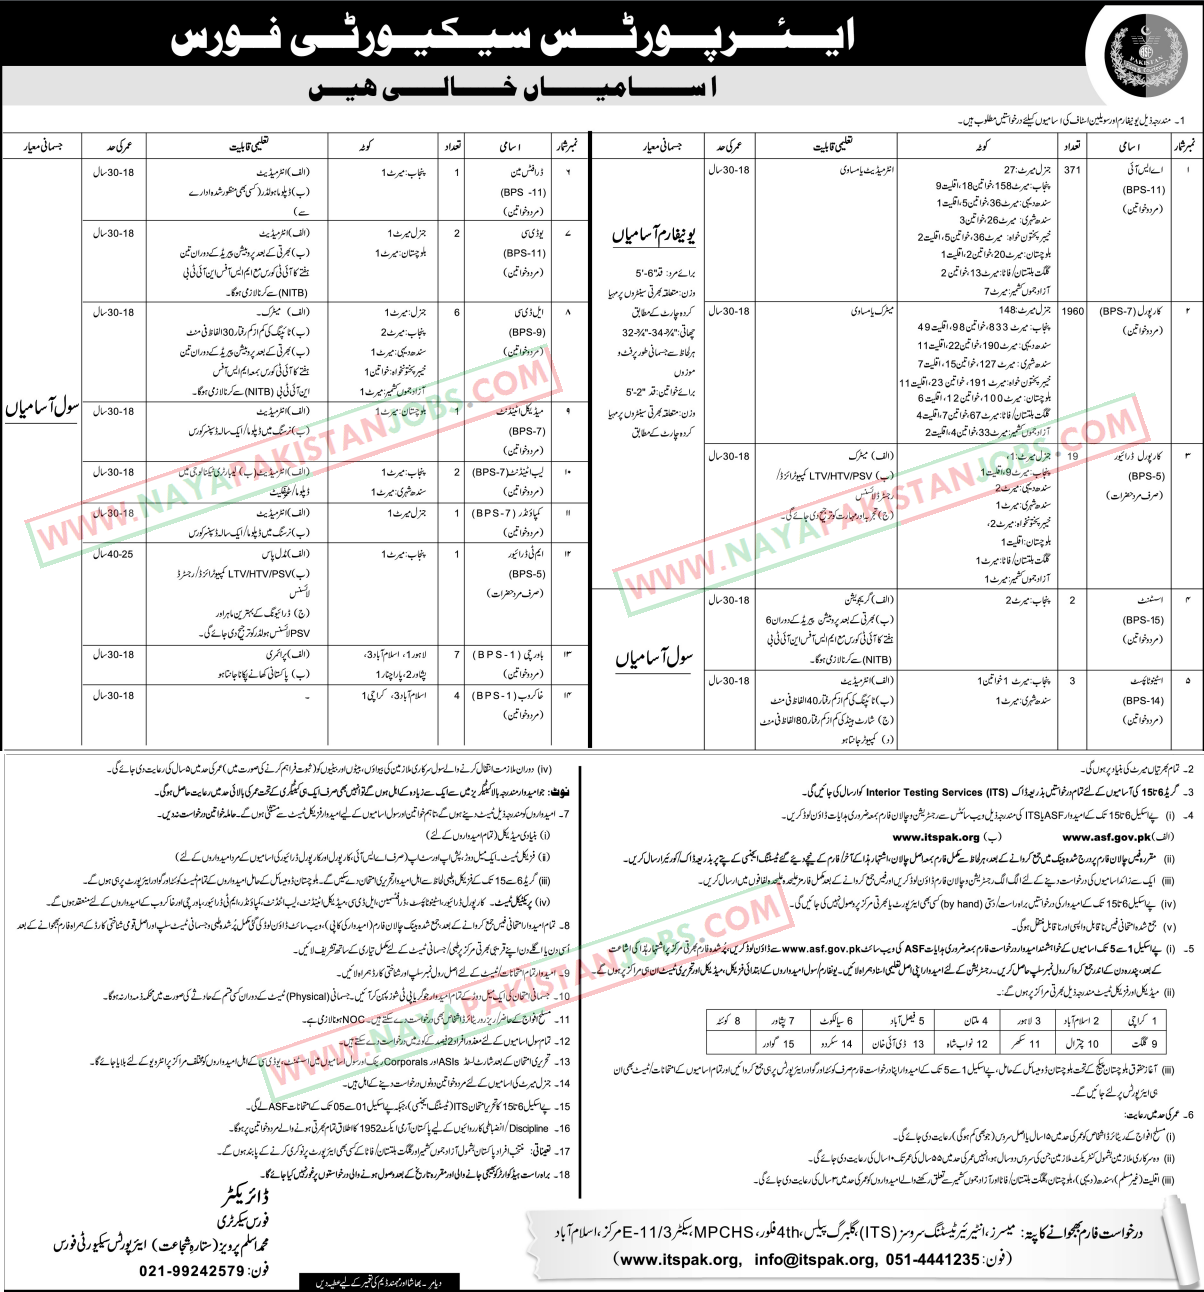 asf jobs 2019 advertisement, asf jobs 2019 application form, asf jobs 2019 last date, asf jobs 2019 last date to apply, asf jobs 2019 in karachi, asf jobs 2019 application form download, asf jobs 2019 paperpk